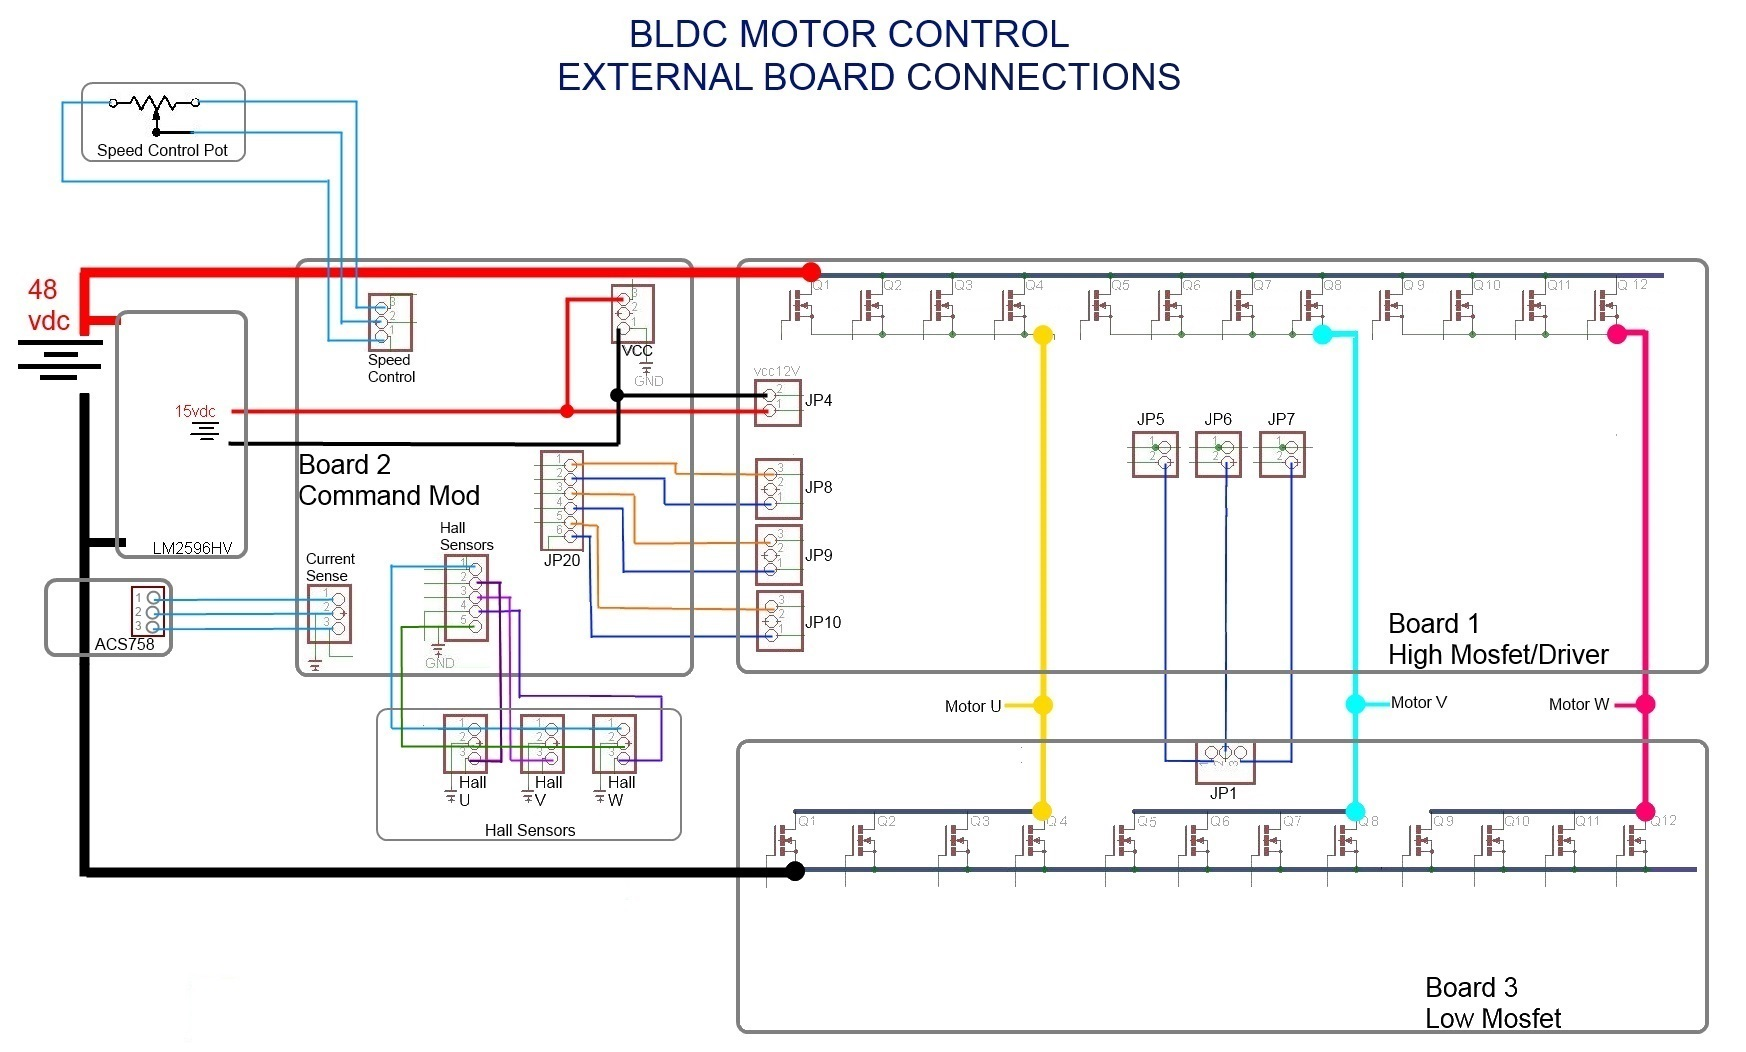 Razor Ground Force Wiring Diagram V further D Cc Monsoon Wont Start Start Button Monsoon further Spd Bldc Lg in addition Razor Dirt Quad Wiring Diagram V moreover Bobina Interna V A. on electric scooter wiring schematic